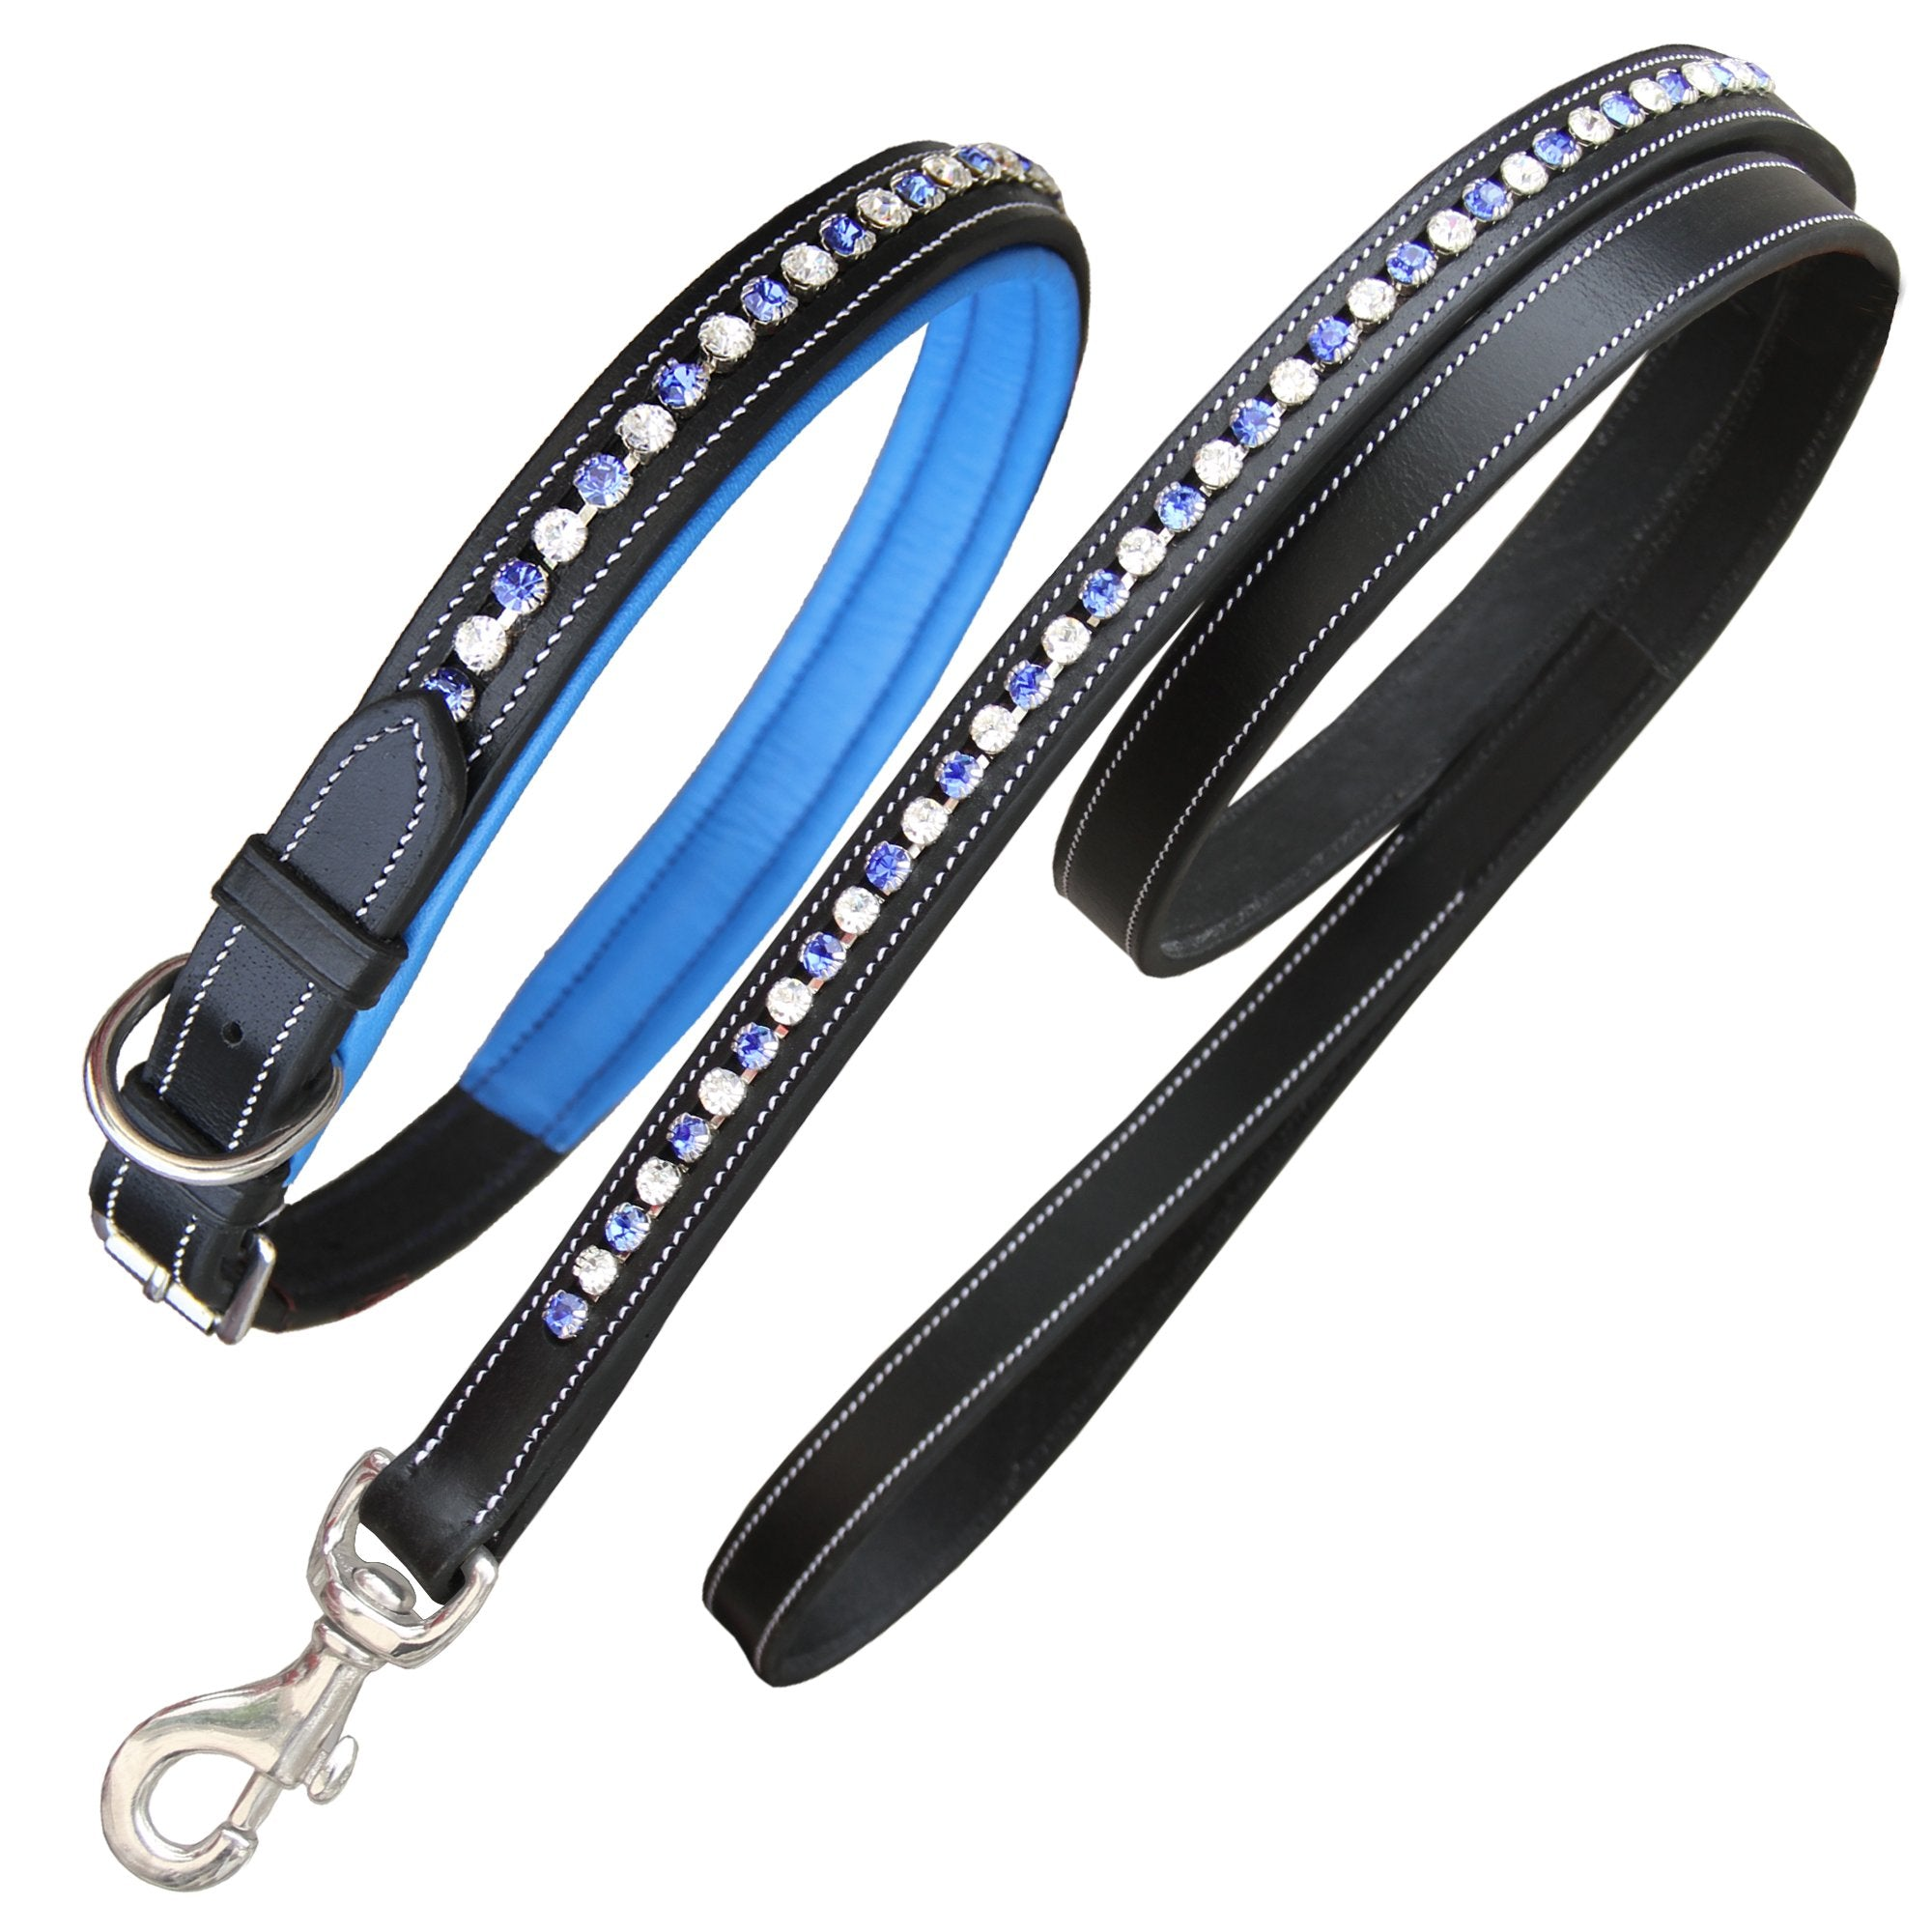 ExionPro White & Blue Bling Dog Collar With Lead-Bridles & Reins